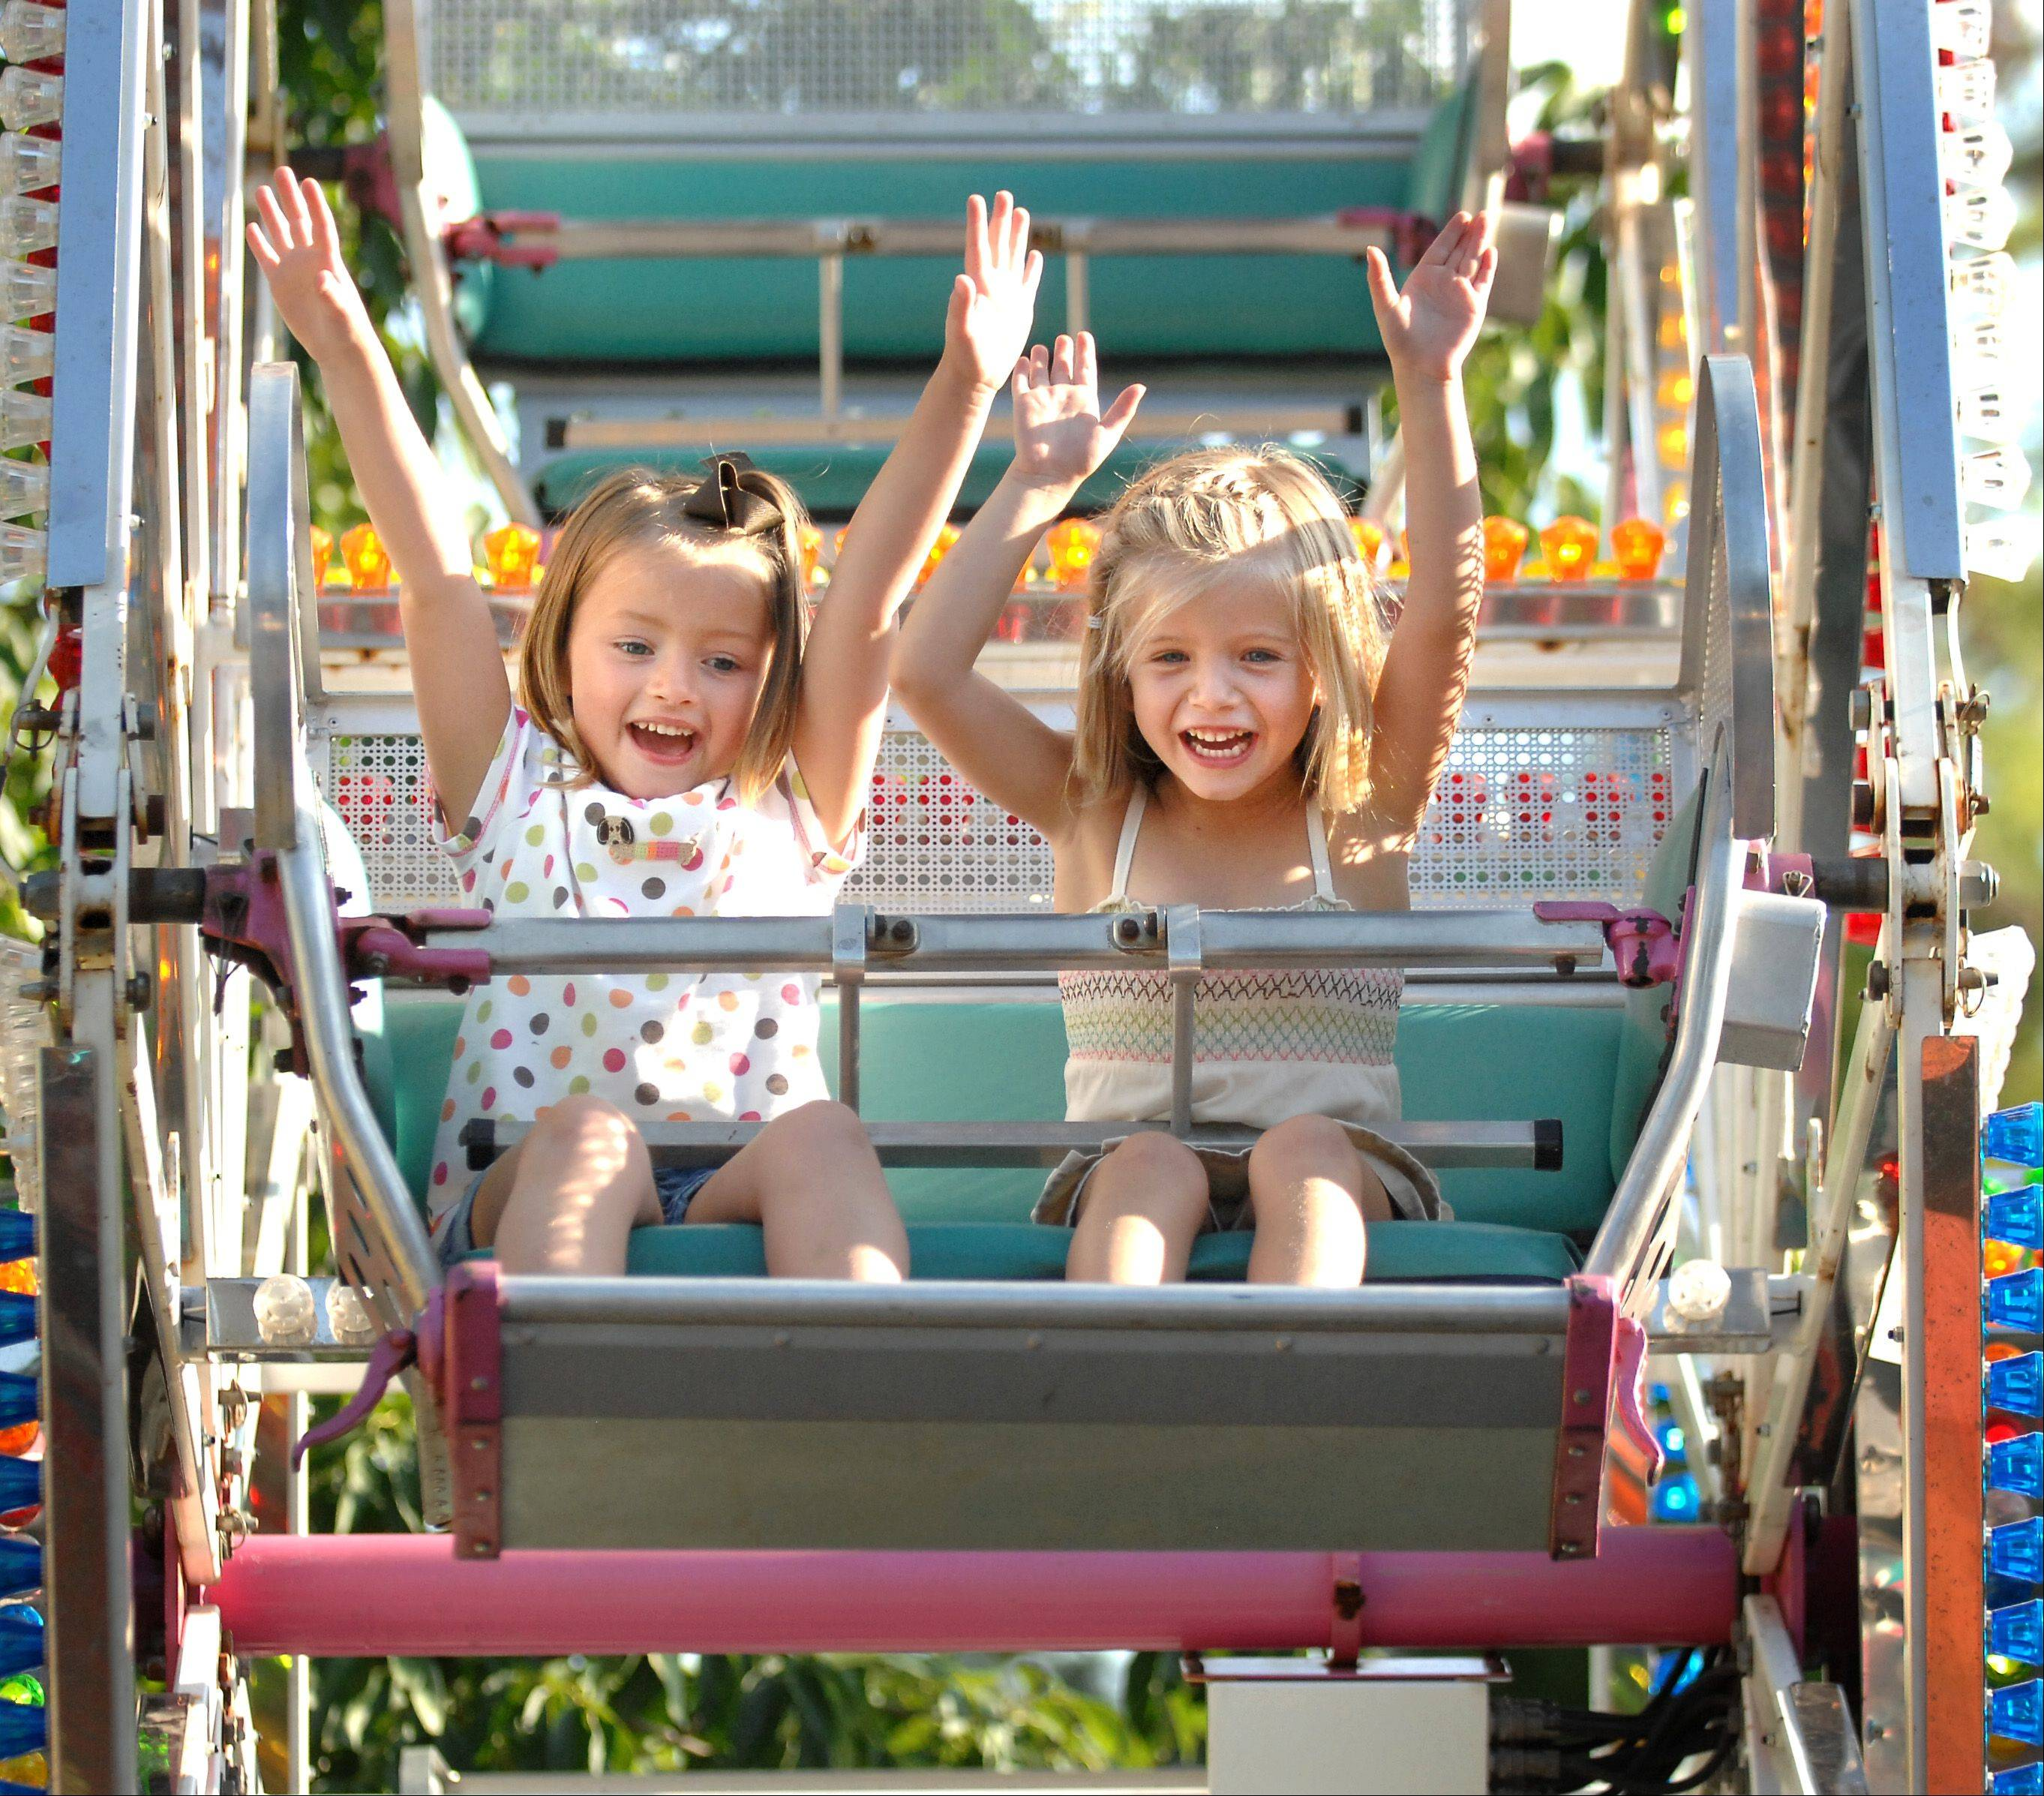 The carnival at the Last Fling festival in Naperville will be set up inside Family Fun Land at the Naper Settlement, 523 S. Webster St.